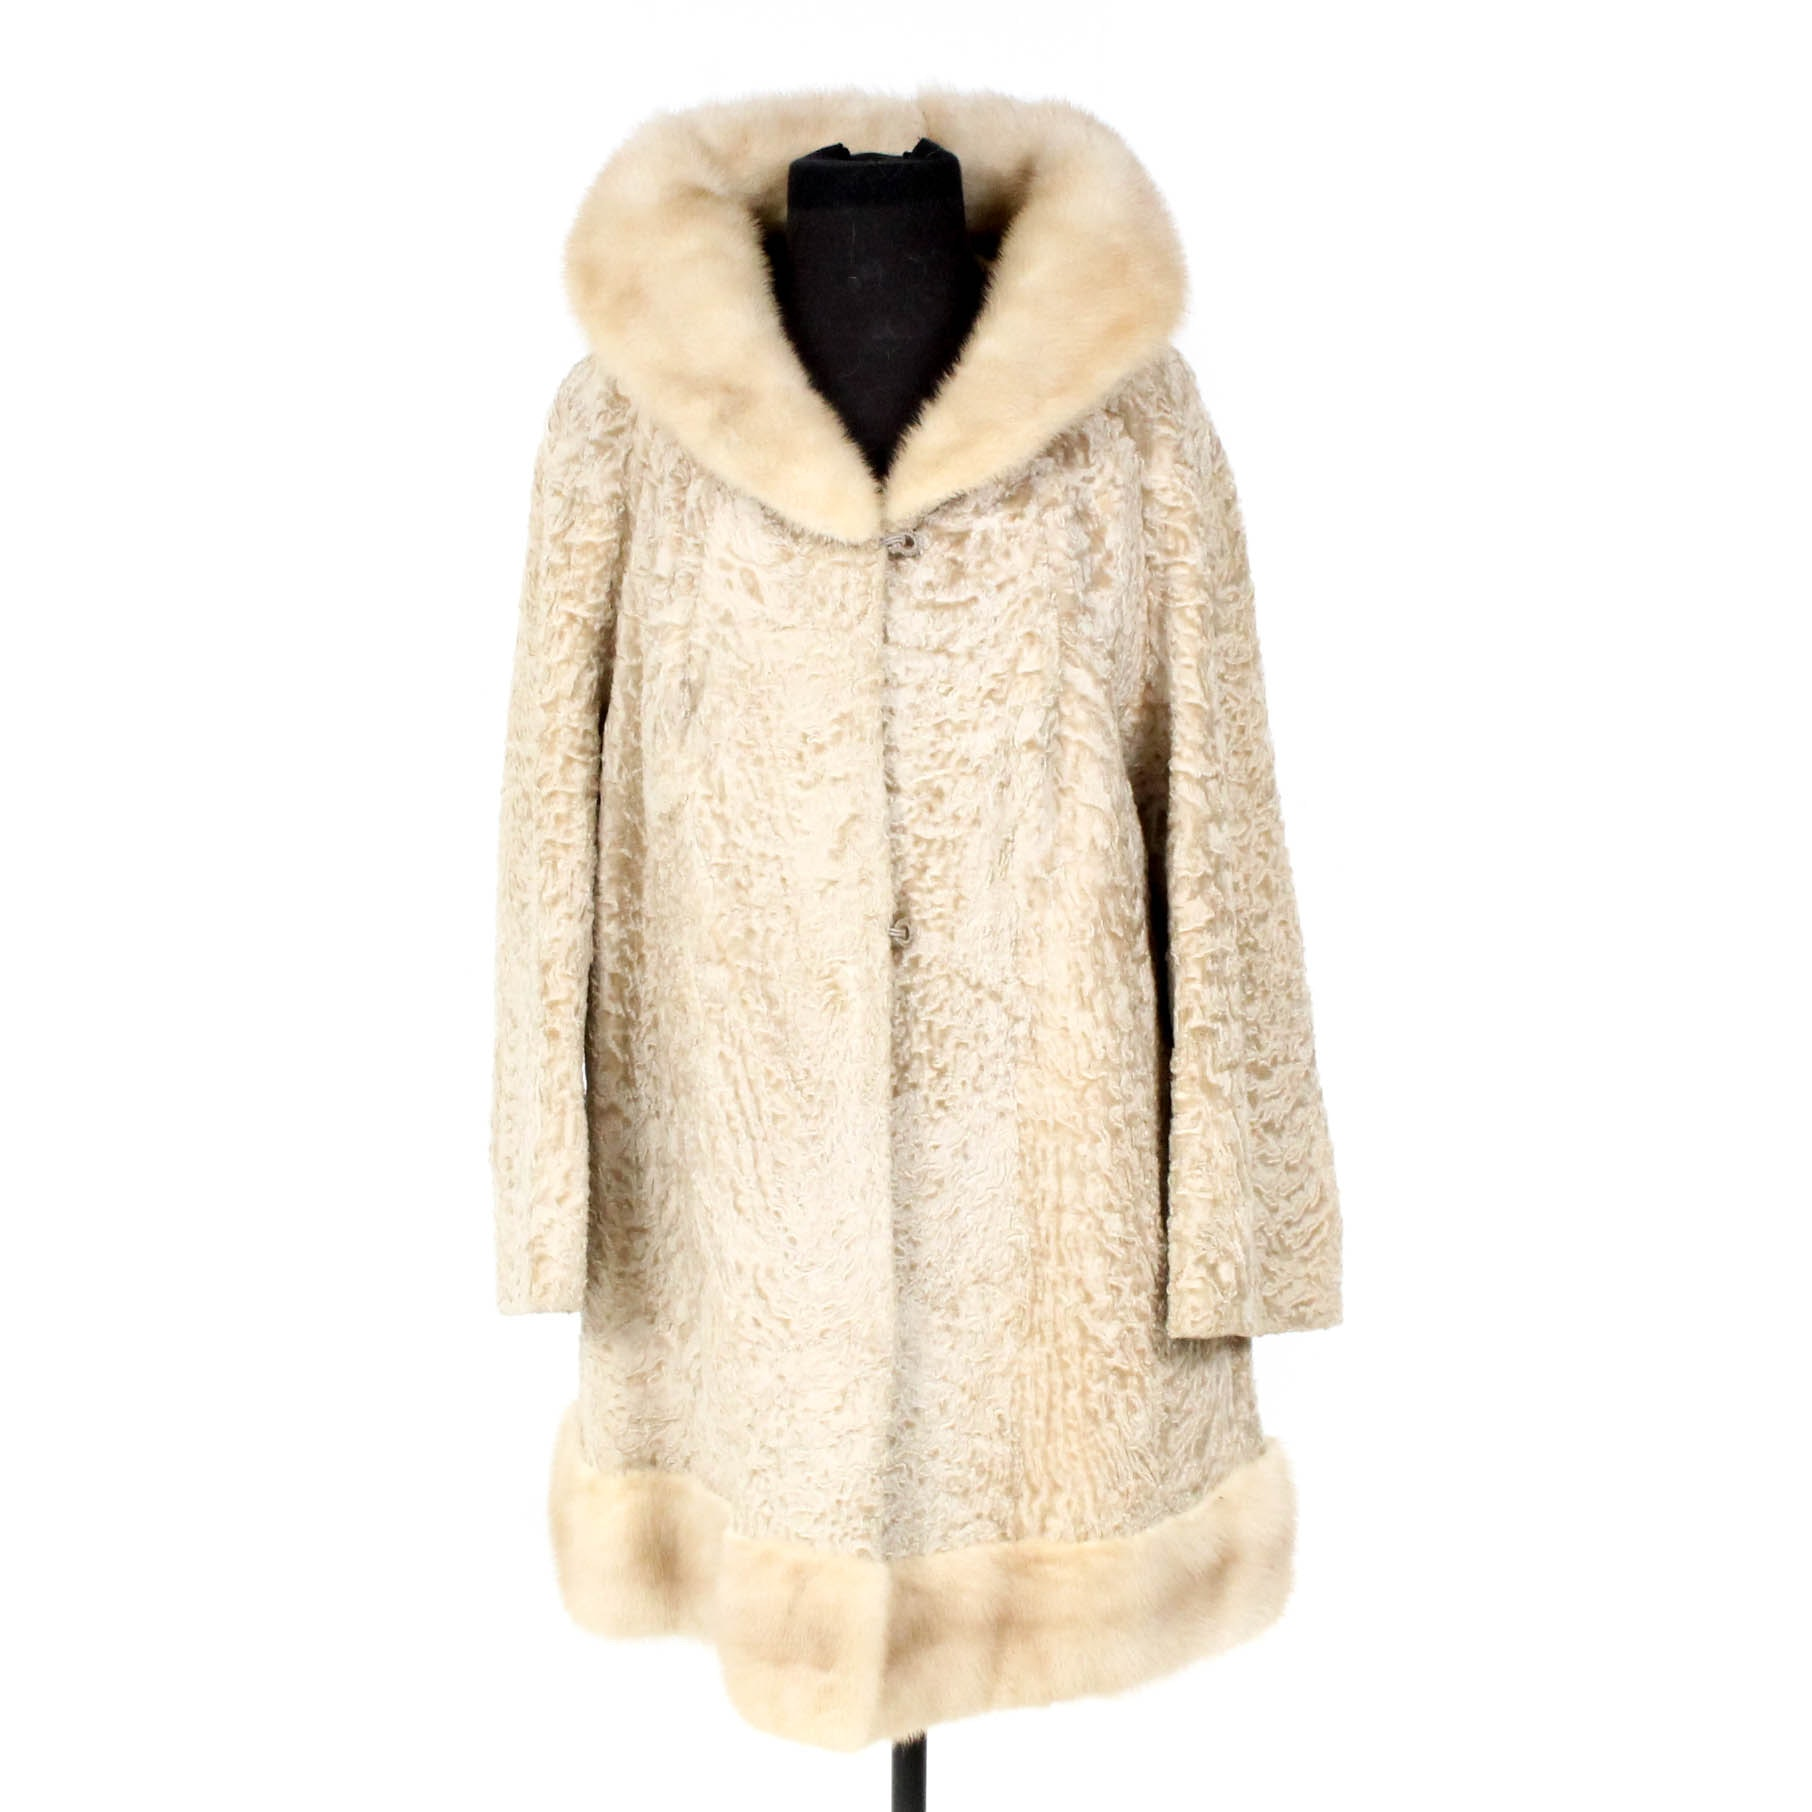 Blond Persian Lamb Coat with Mink Fur Collar